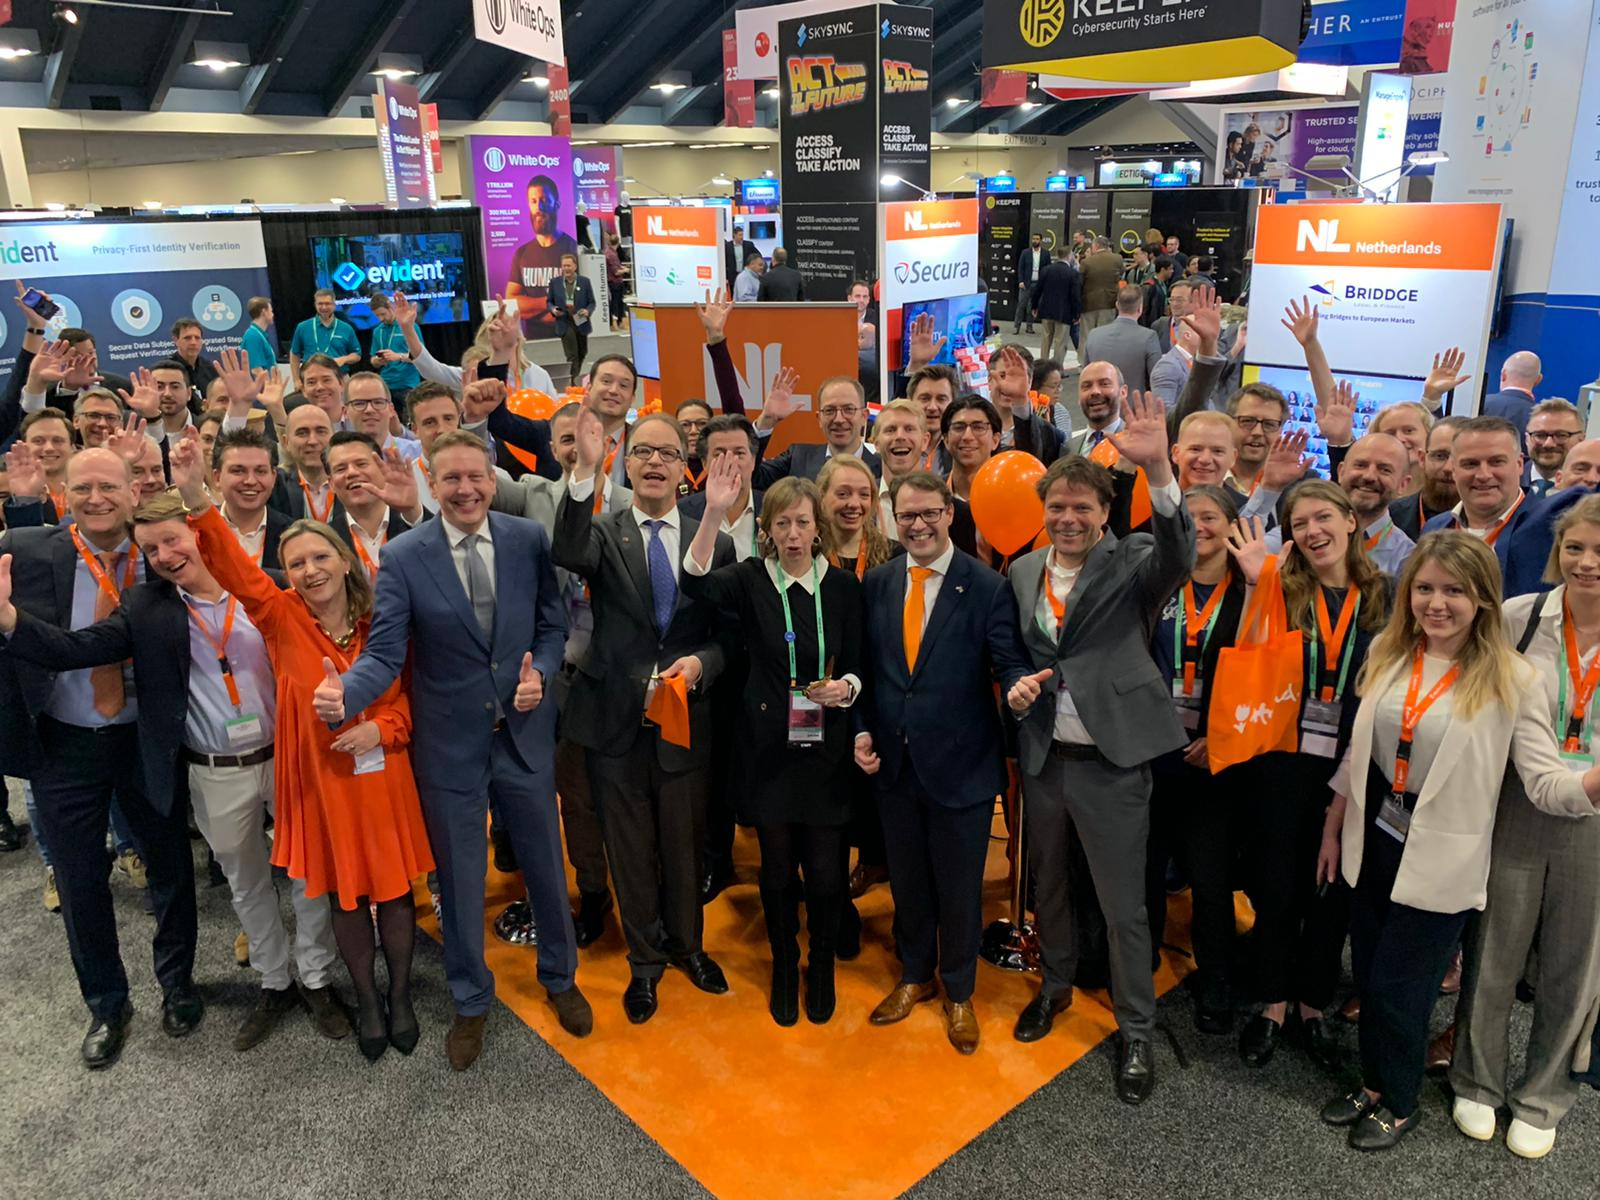 Holland Pavilion at RSA 2020 presents the Dutch